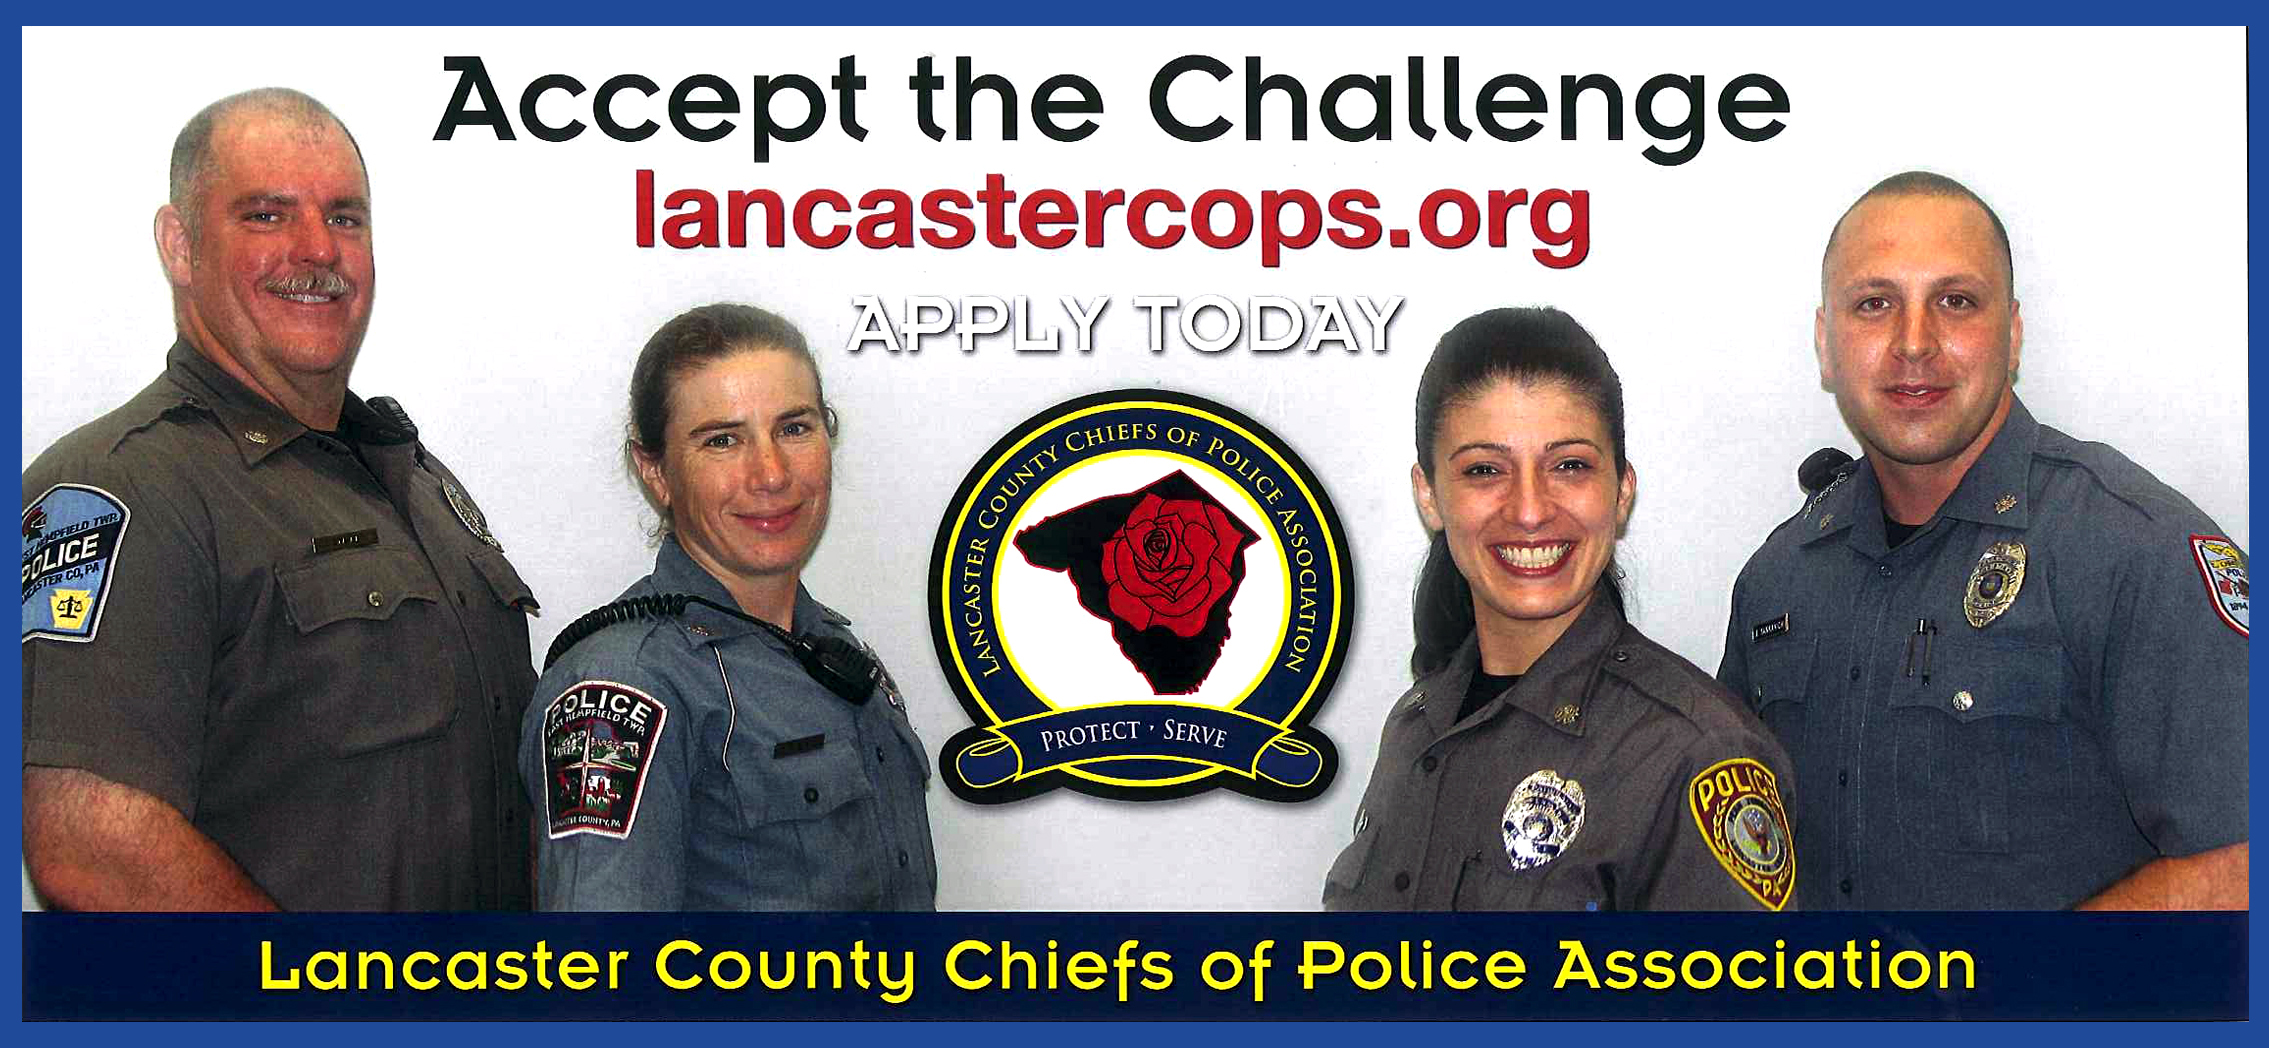 Annual Testing Process | Lancaster County, PA - Official Website